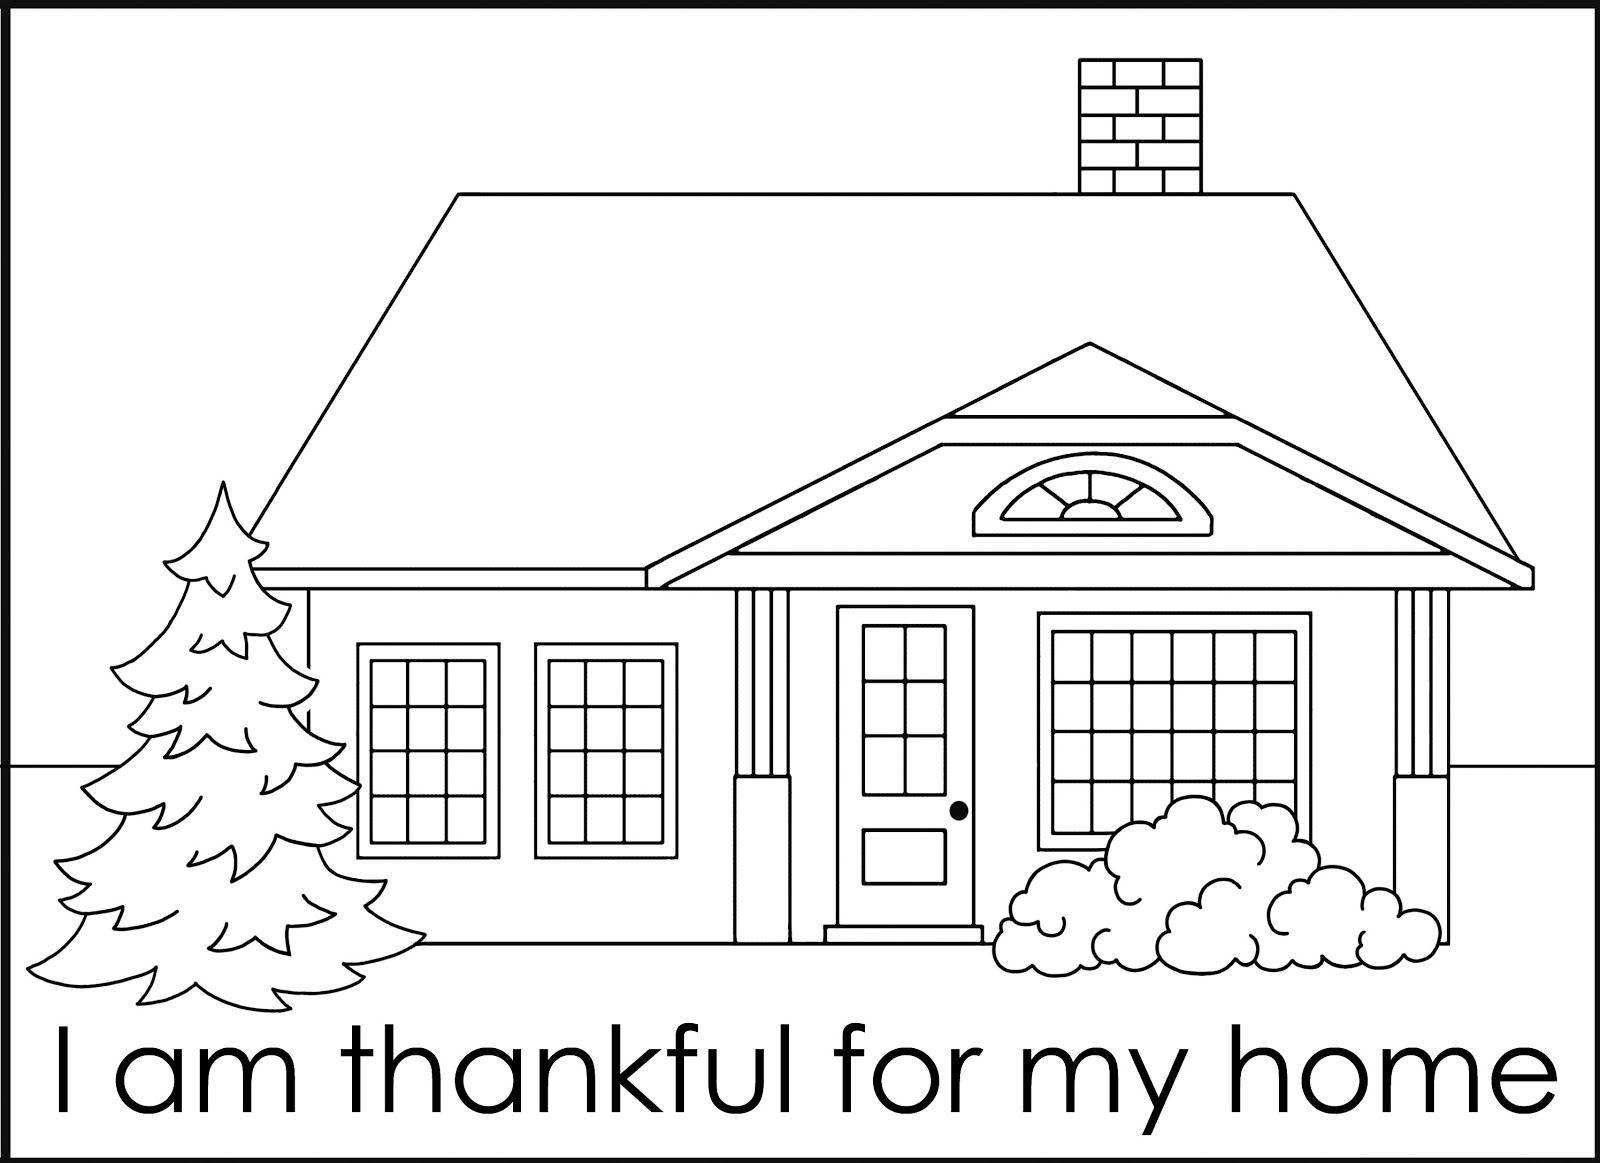 house coloring sheet house coloring pages getcoloringpagescom coloring house sheet